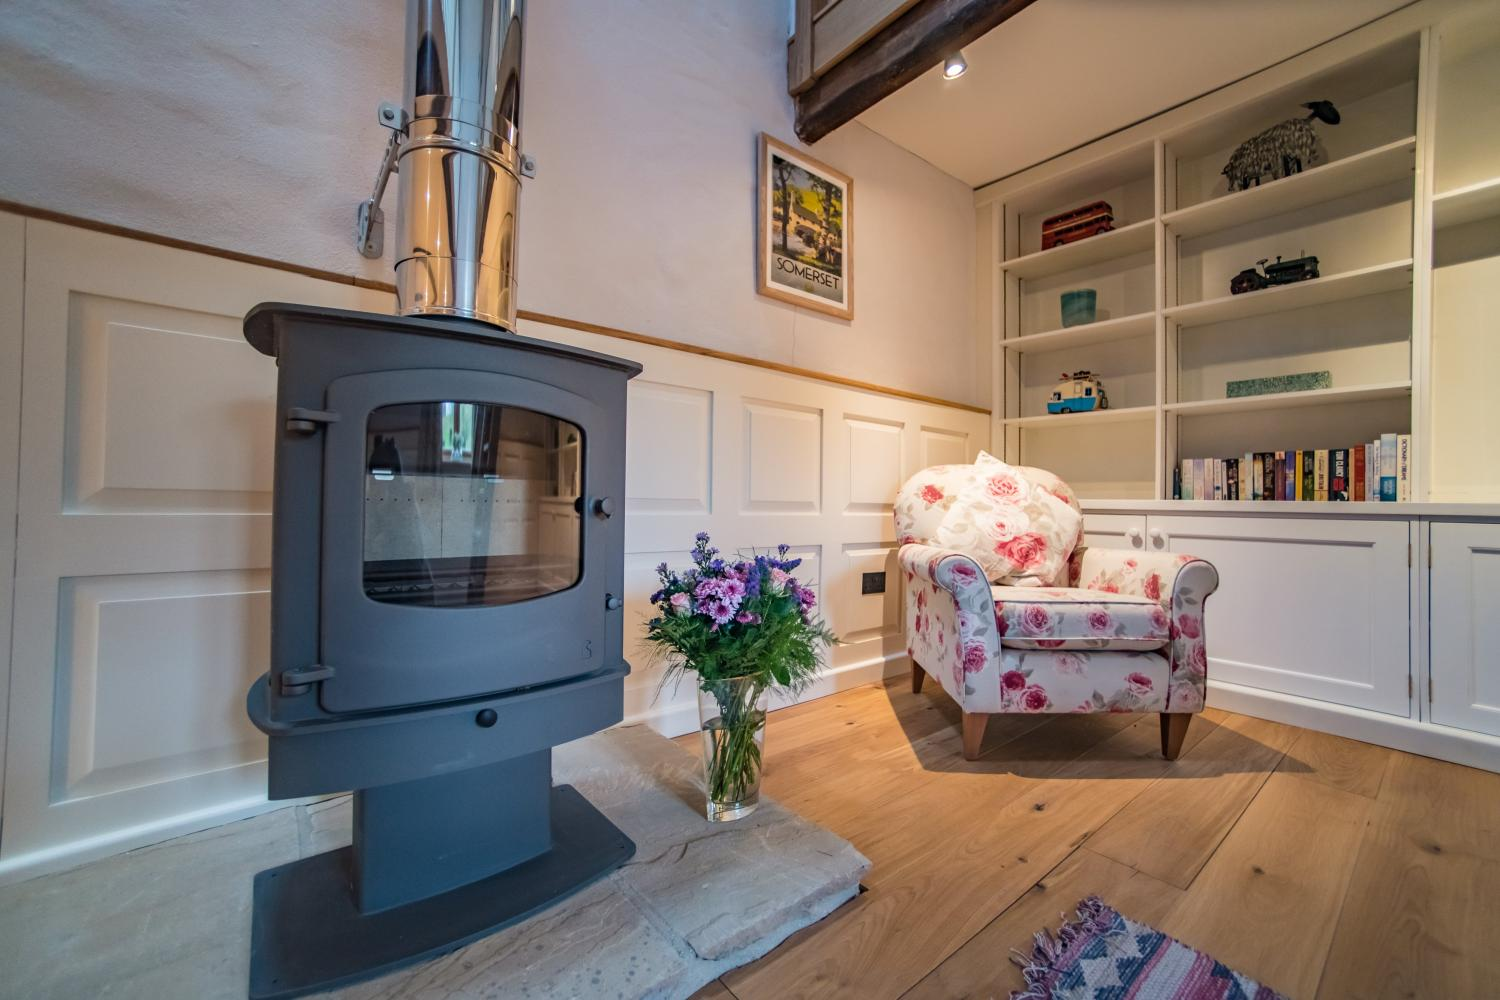 The Cowshed Wood Burner